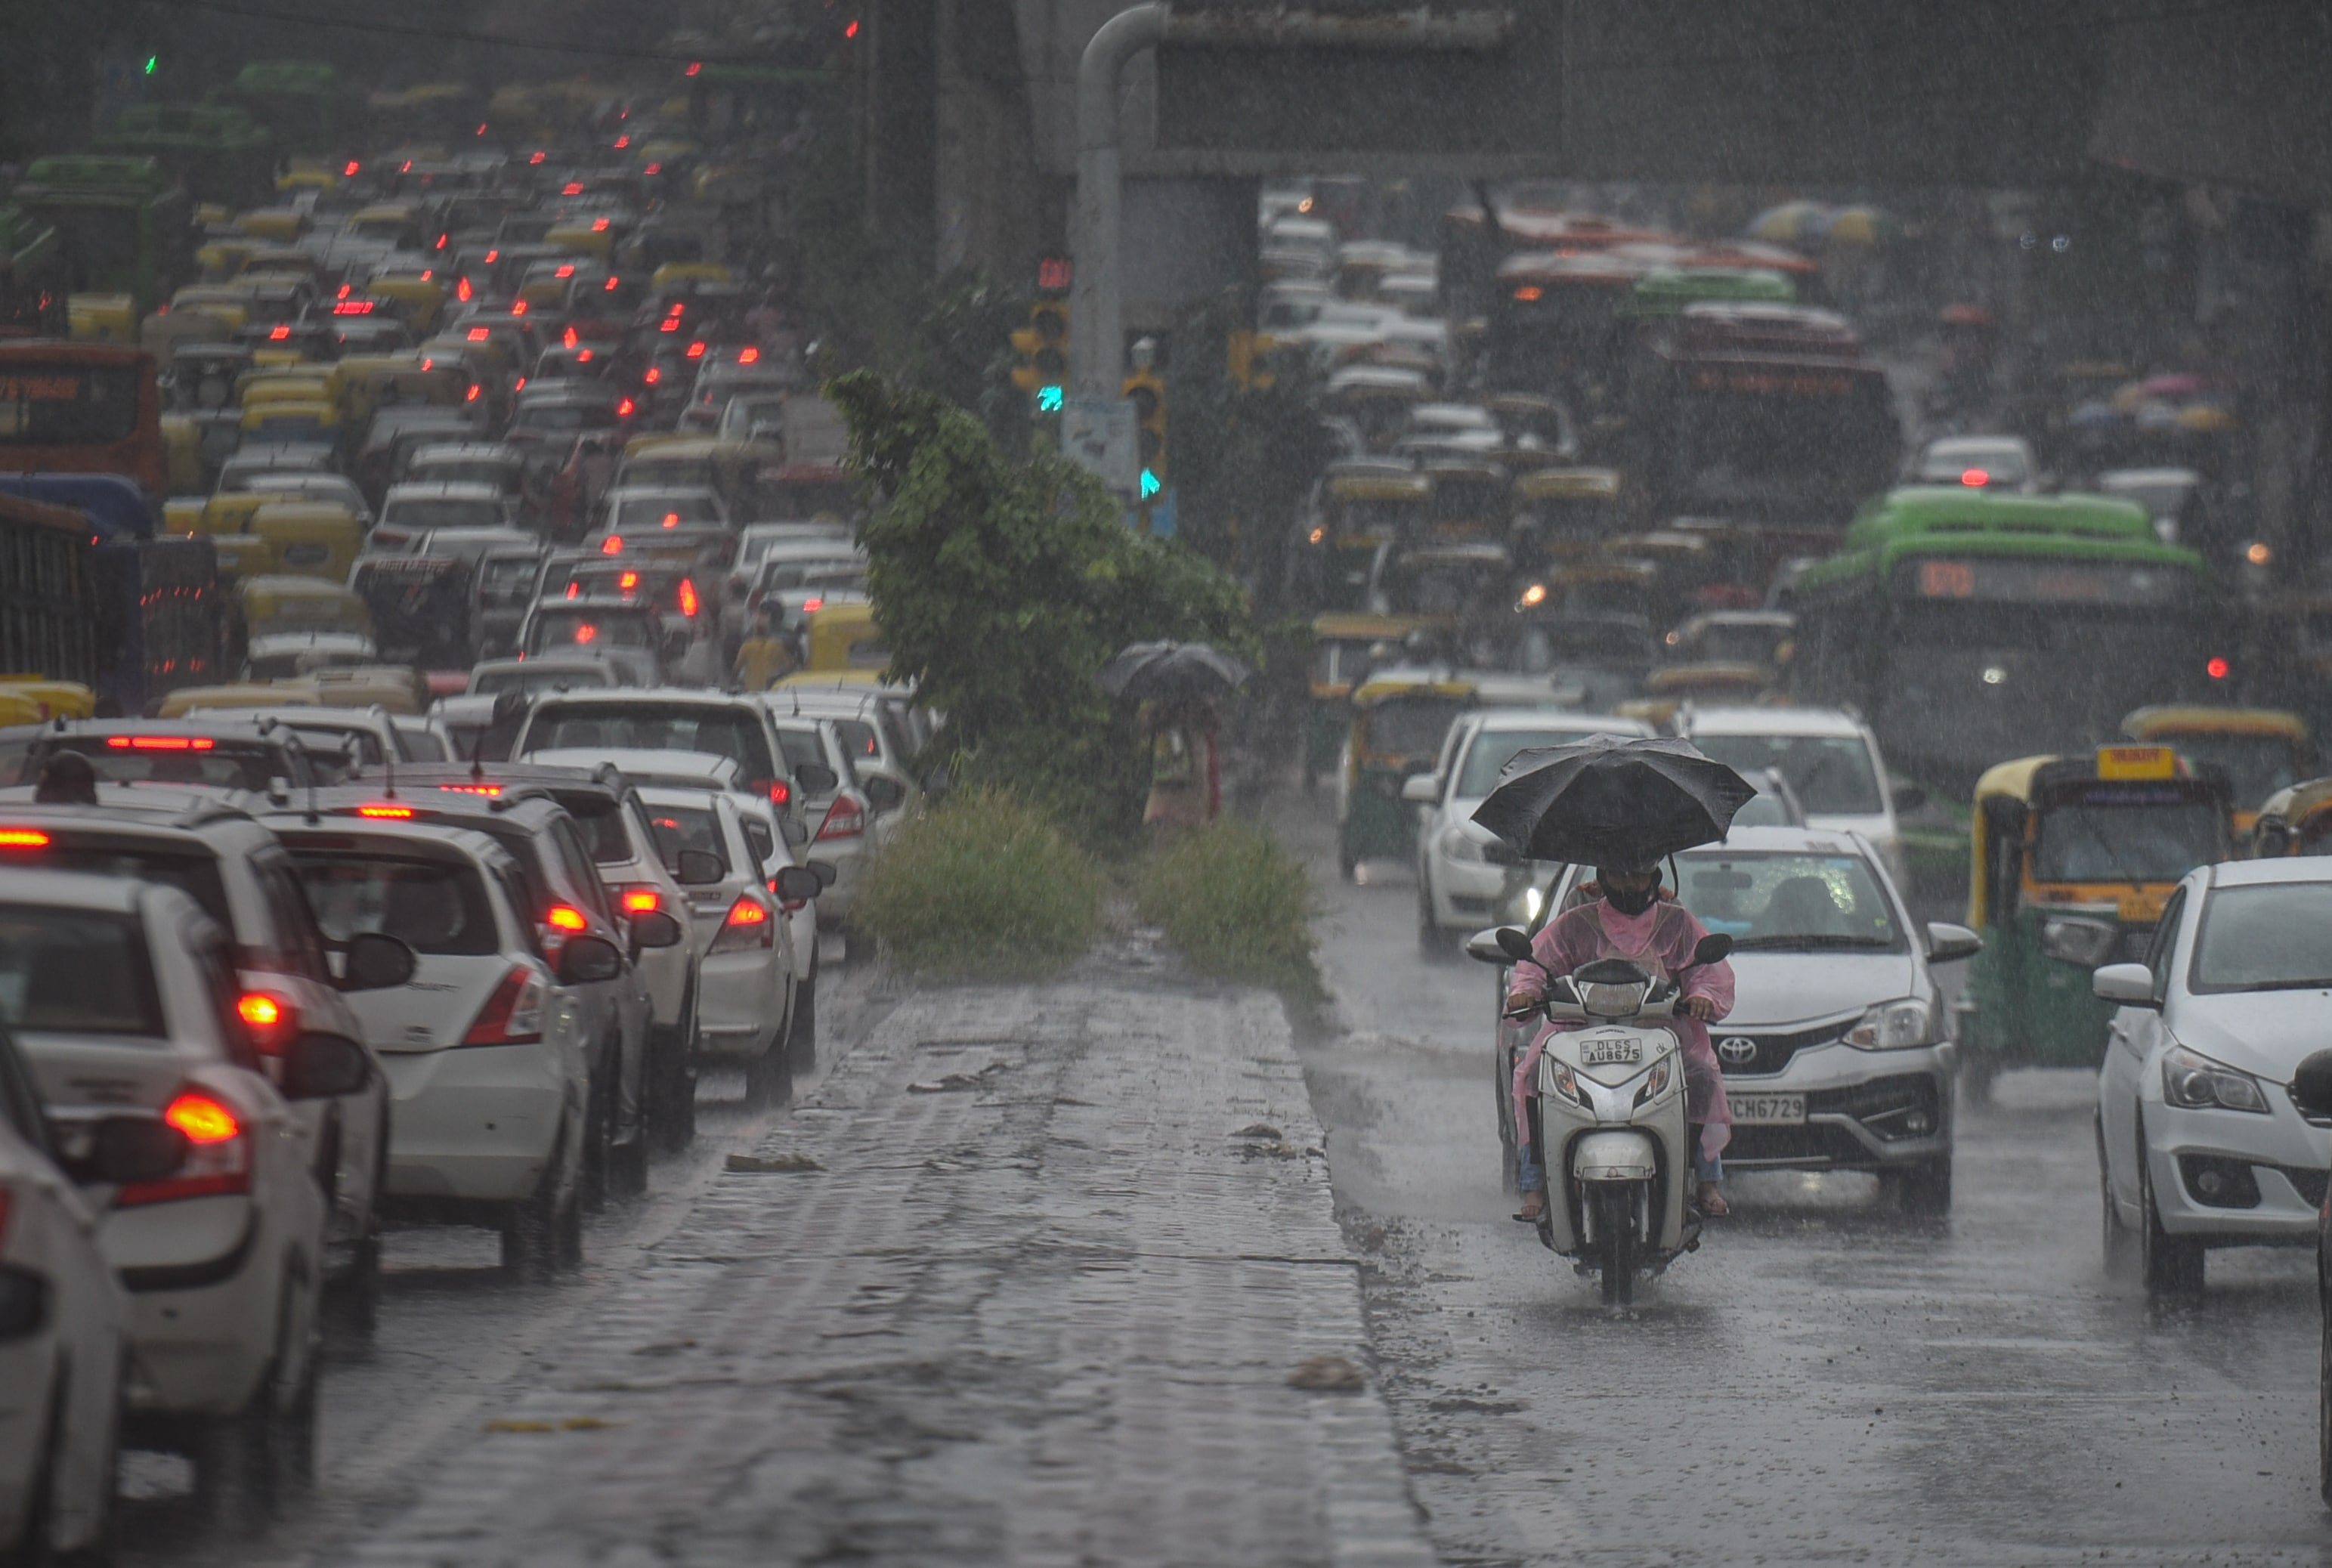 Commuters took several hours to get from one point to another owing to submerged roads in many parts of the city. This photo is taken at Delhi's Shadipur. (Sanchit Khanna/HT PHOTO)